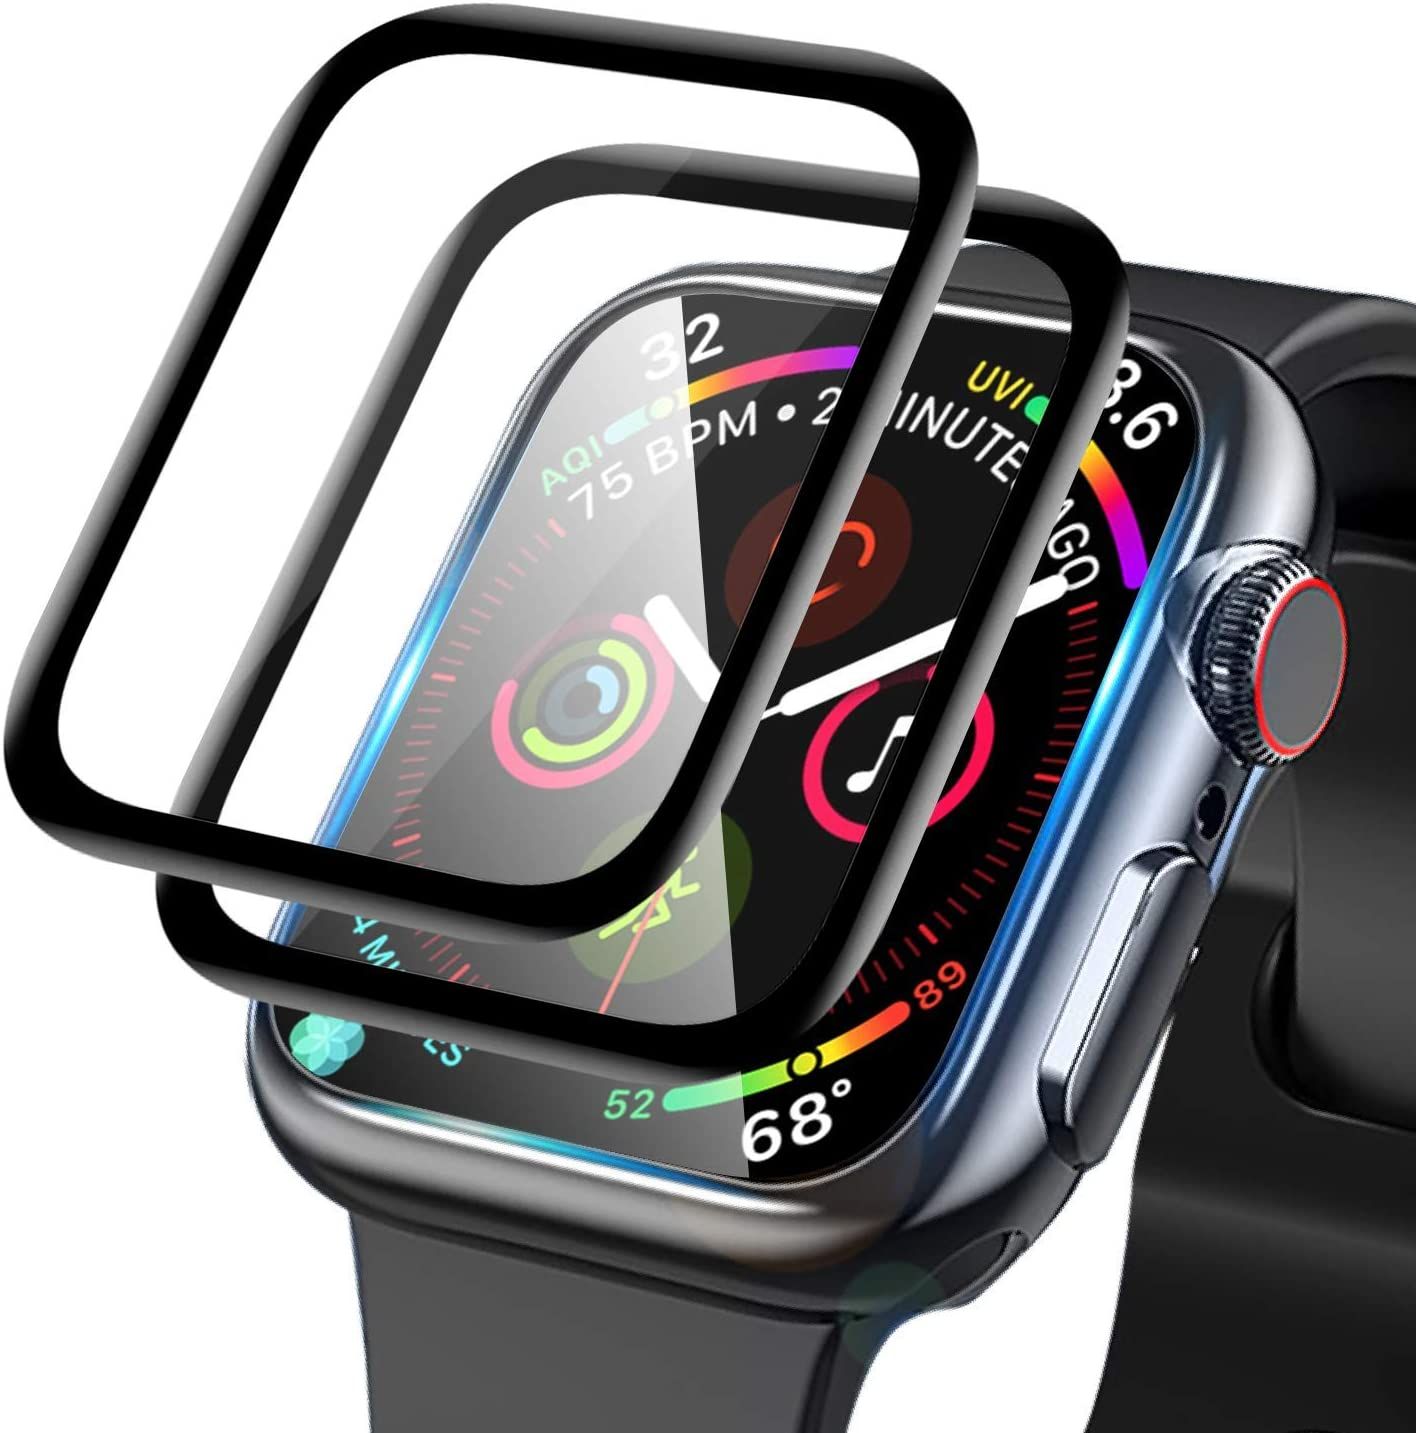 Apple Watch Screen Protector 44mm, Tempered Glass Full Coverage Scratch-Resistant Waterproof, Tempered Glass Film for Apple iWatch 44mm Series 4/5 (2 -Pcs)